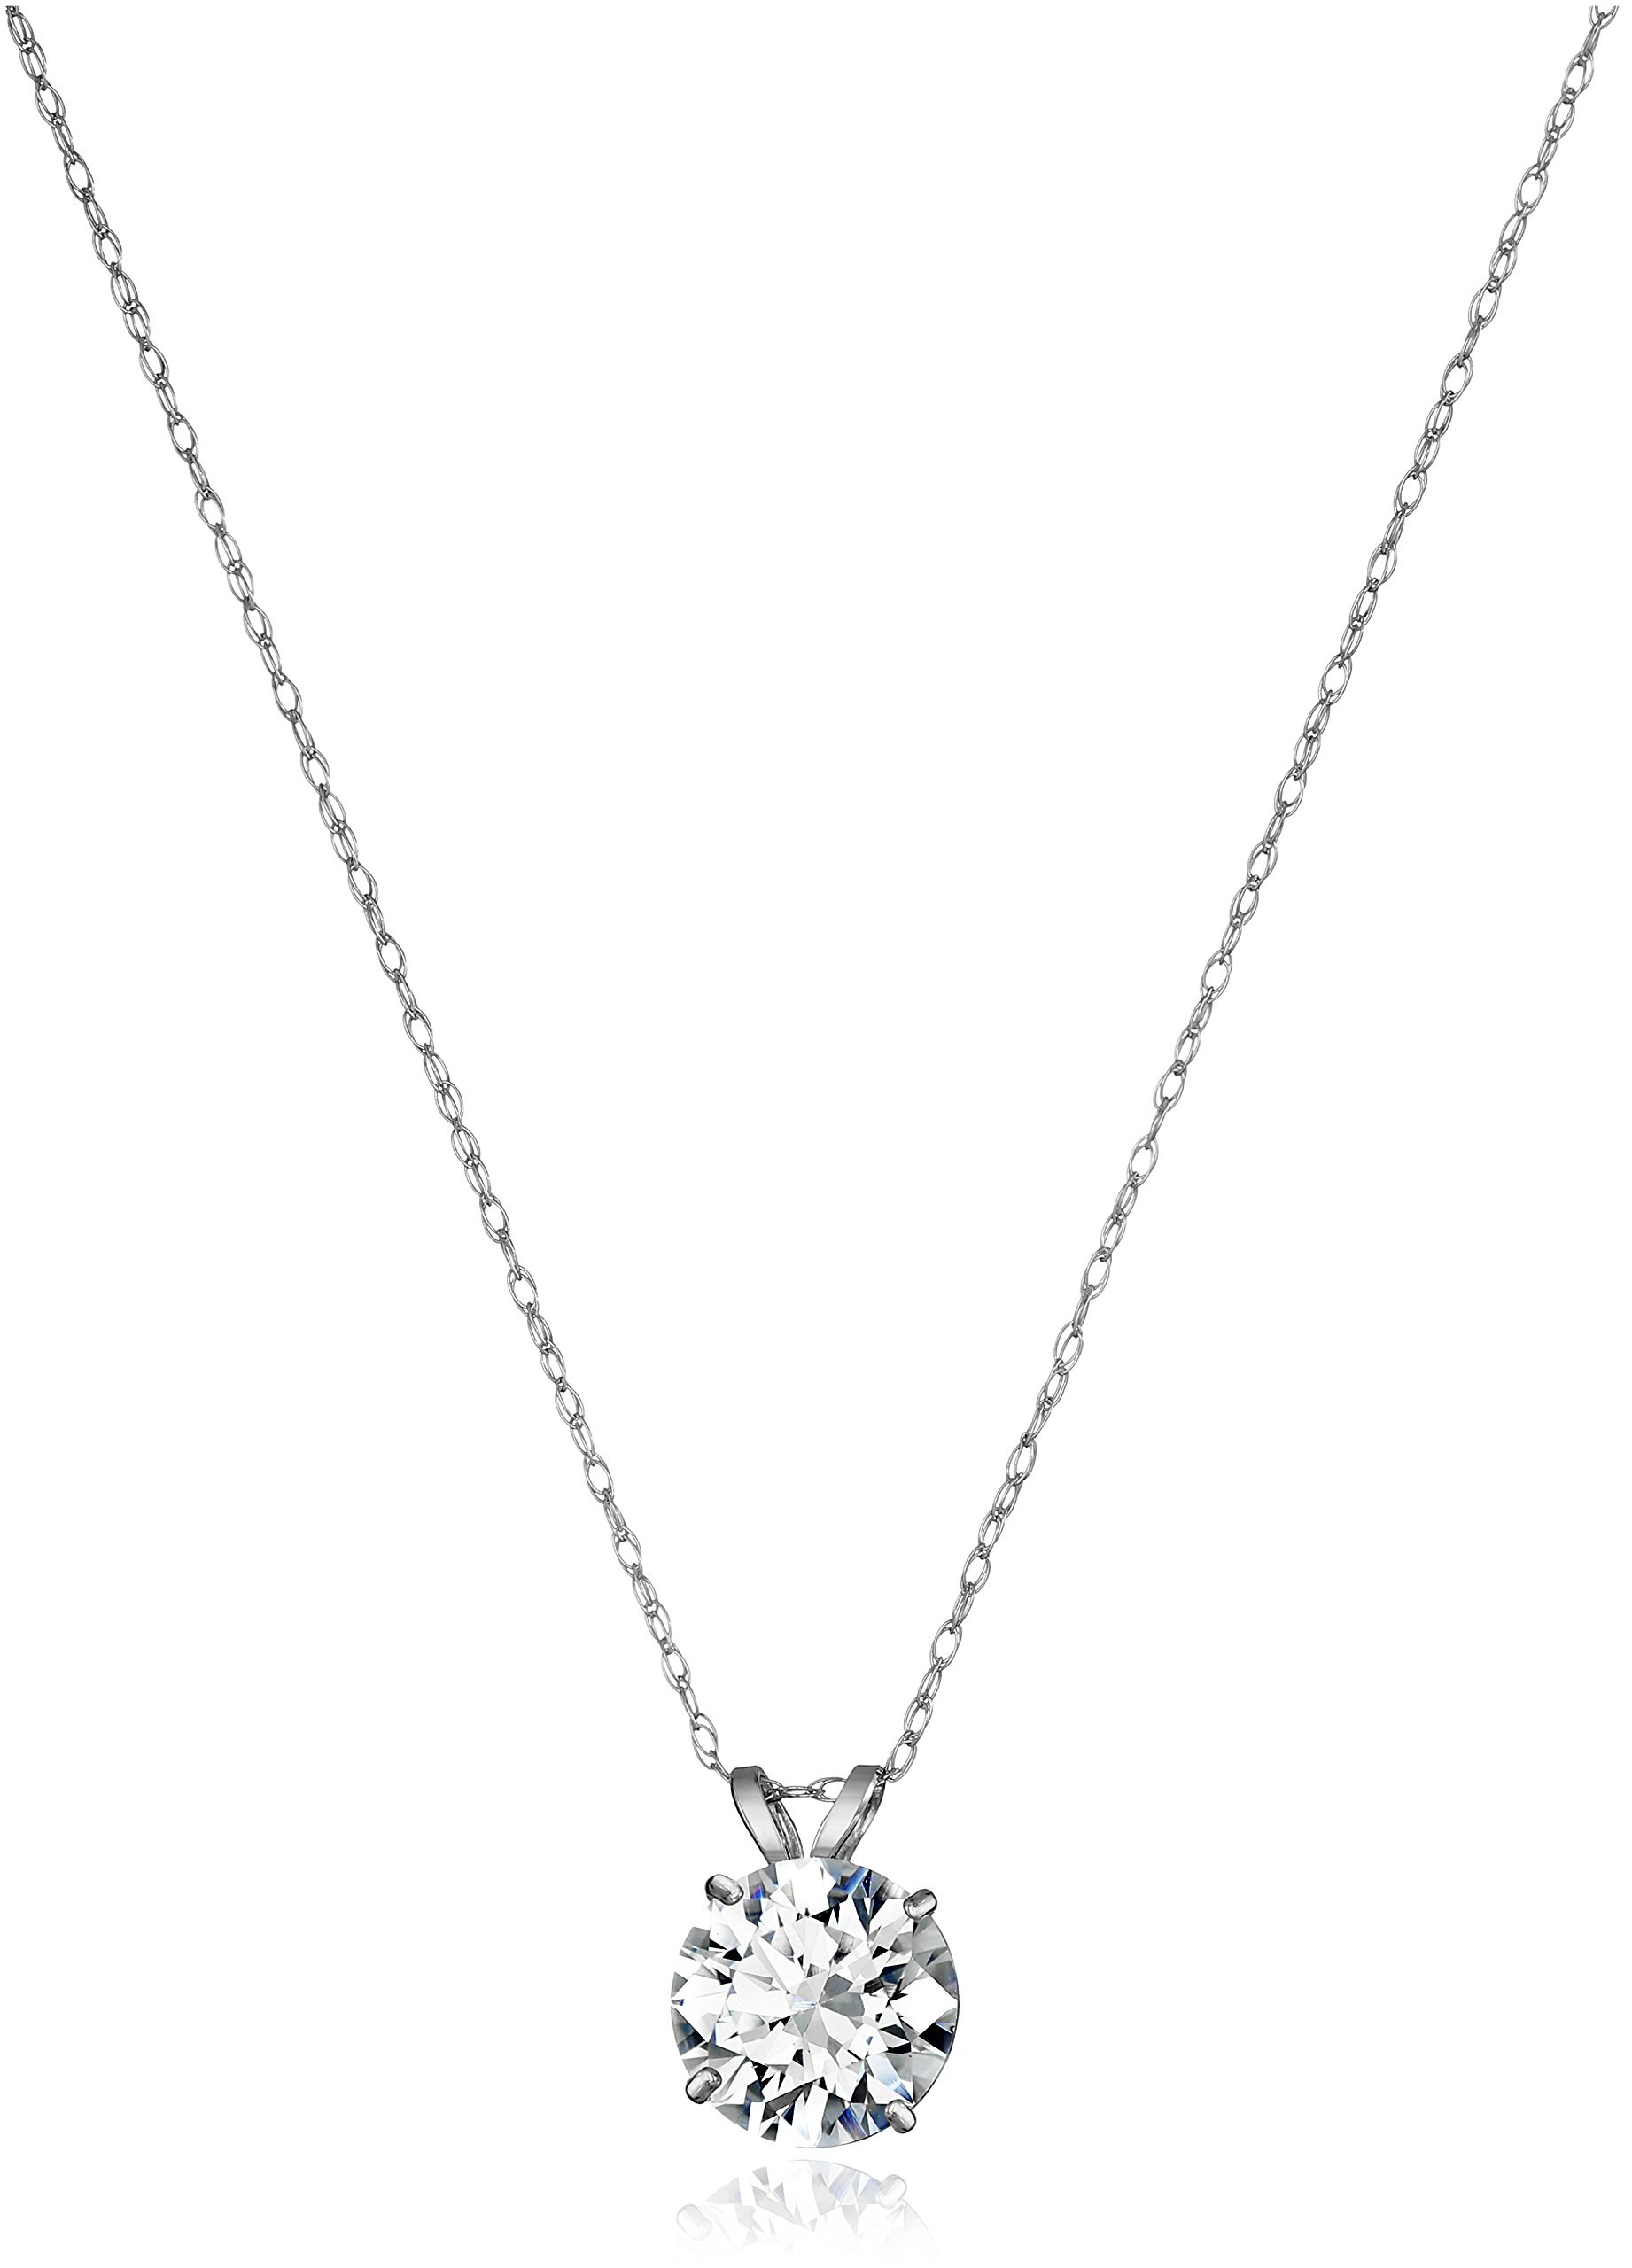 10K White Gold Solitaire Pendant Necklace set with Round Cut Swarovski Zirconia (2 cttw), 18''